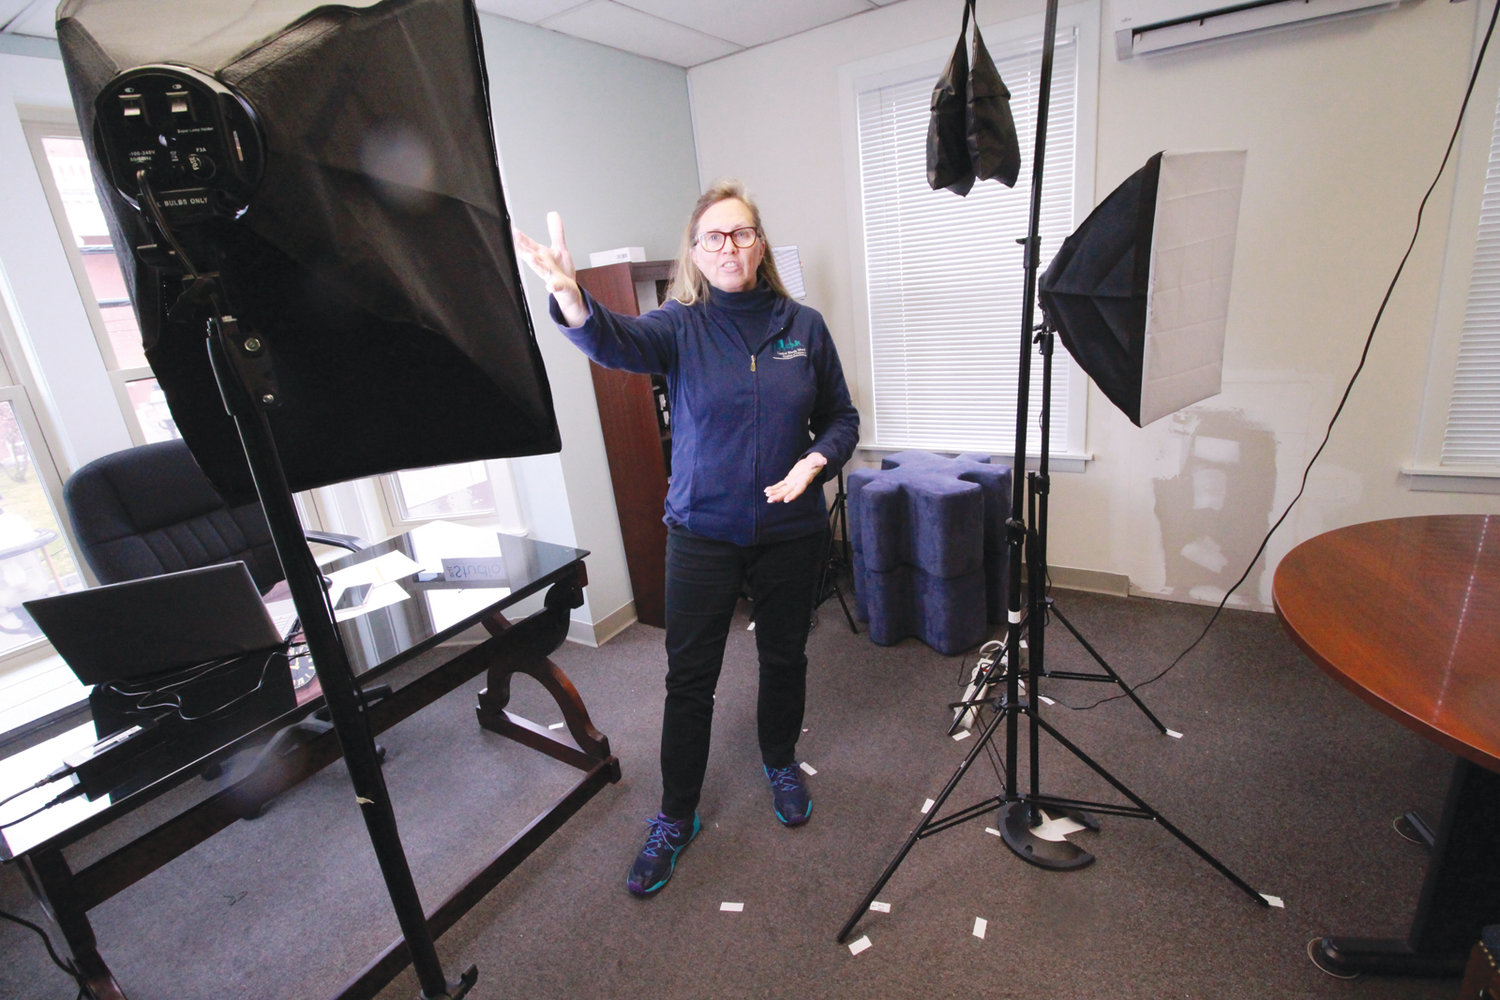 VIDEO CALL: Lauren Slocum, president and CEO of the Central Rhode Island Chamber of Commerce, records videos in an office studio to offer advice for businesses and employees as the virus takes its toll.